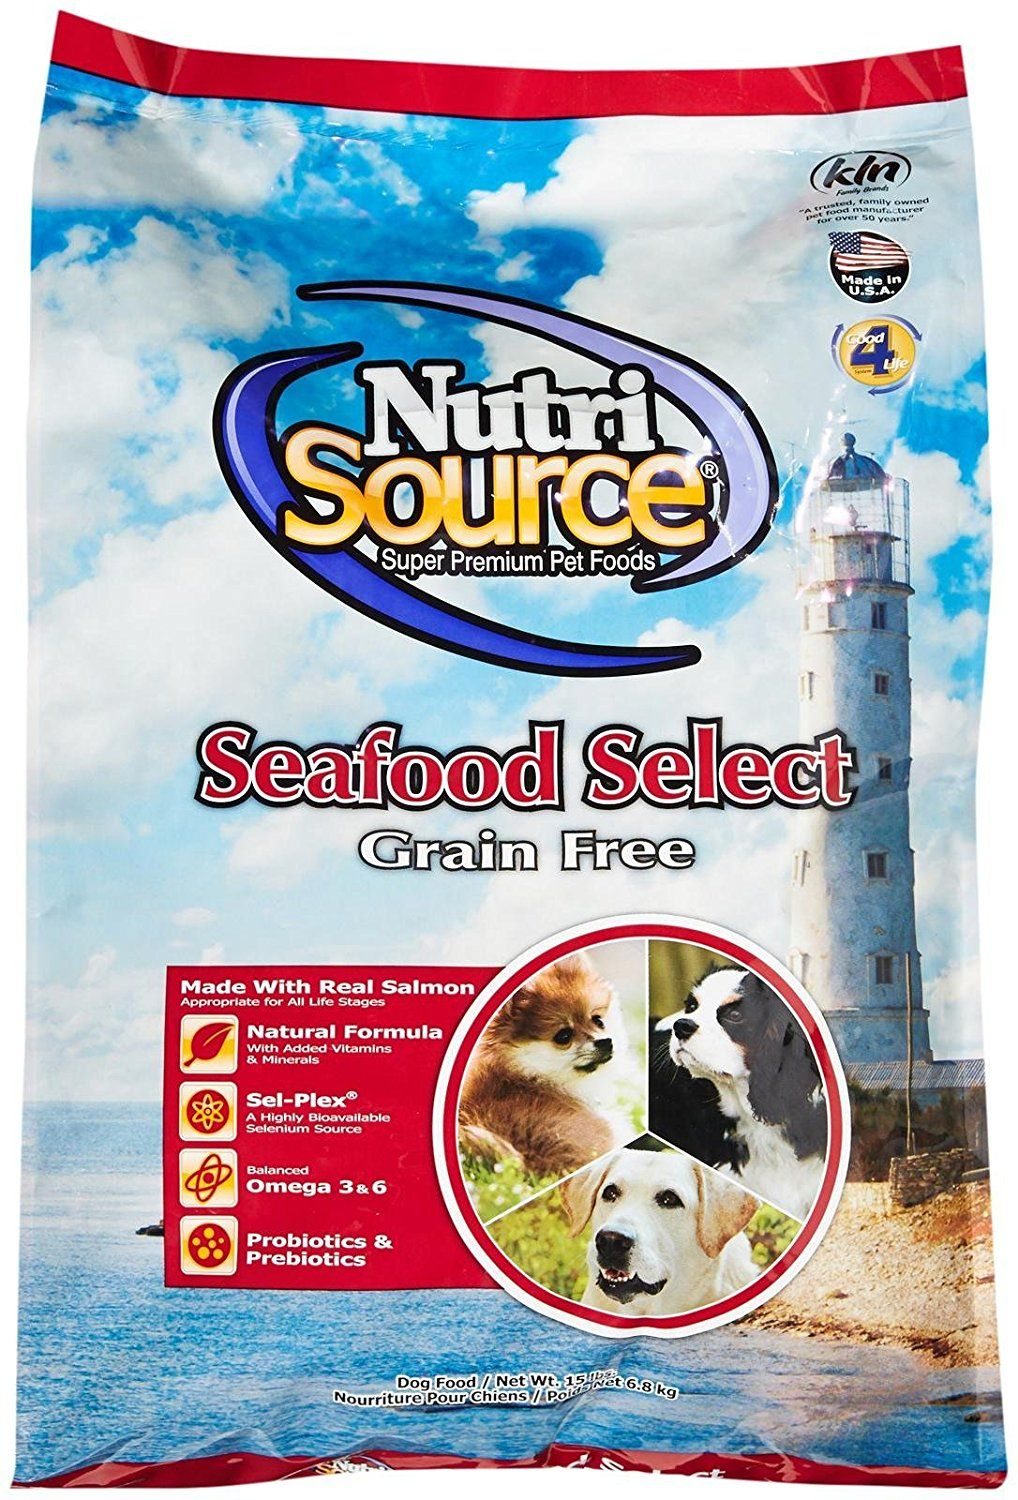 Nutri source grain free seafood select see this great